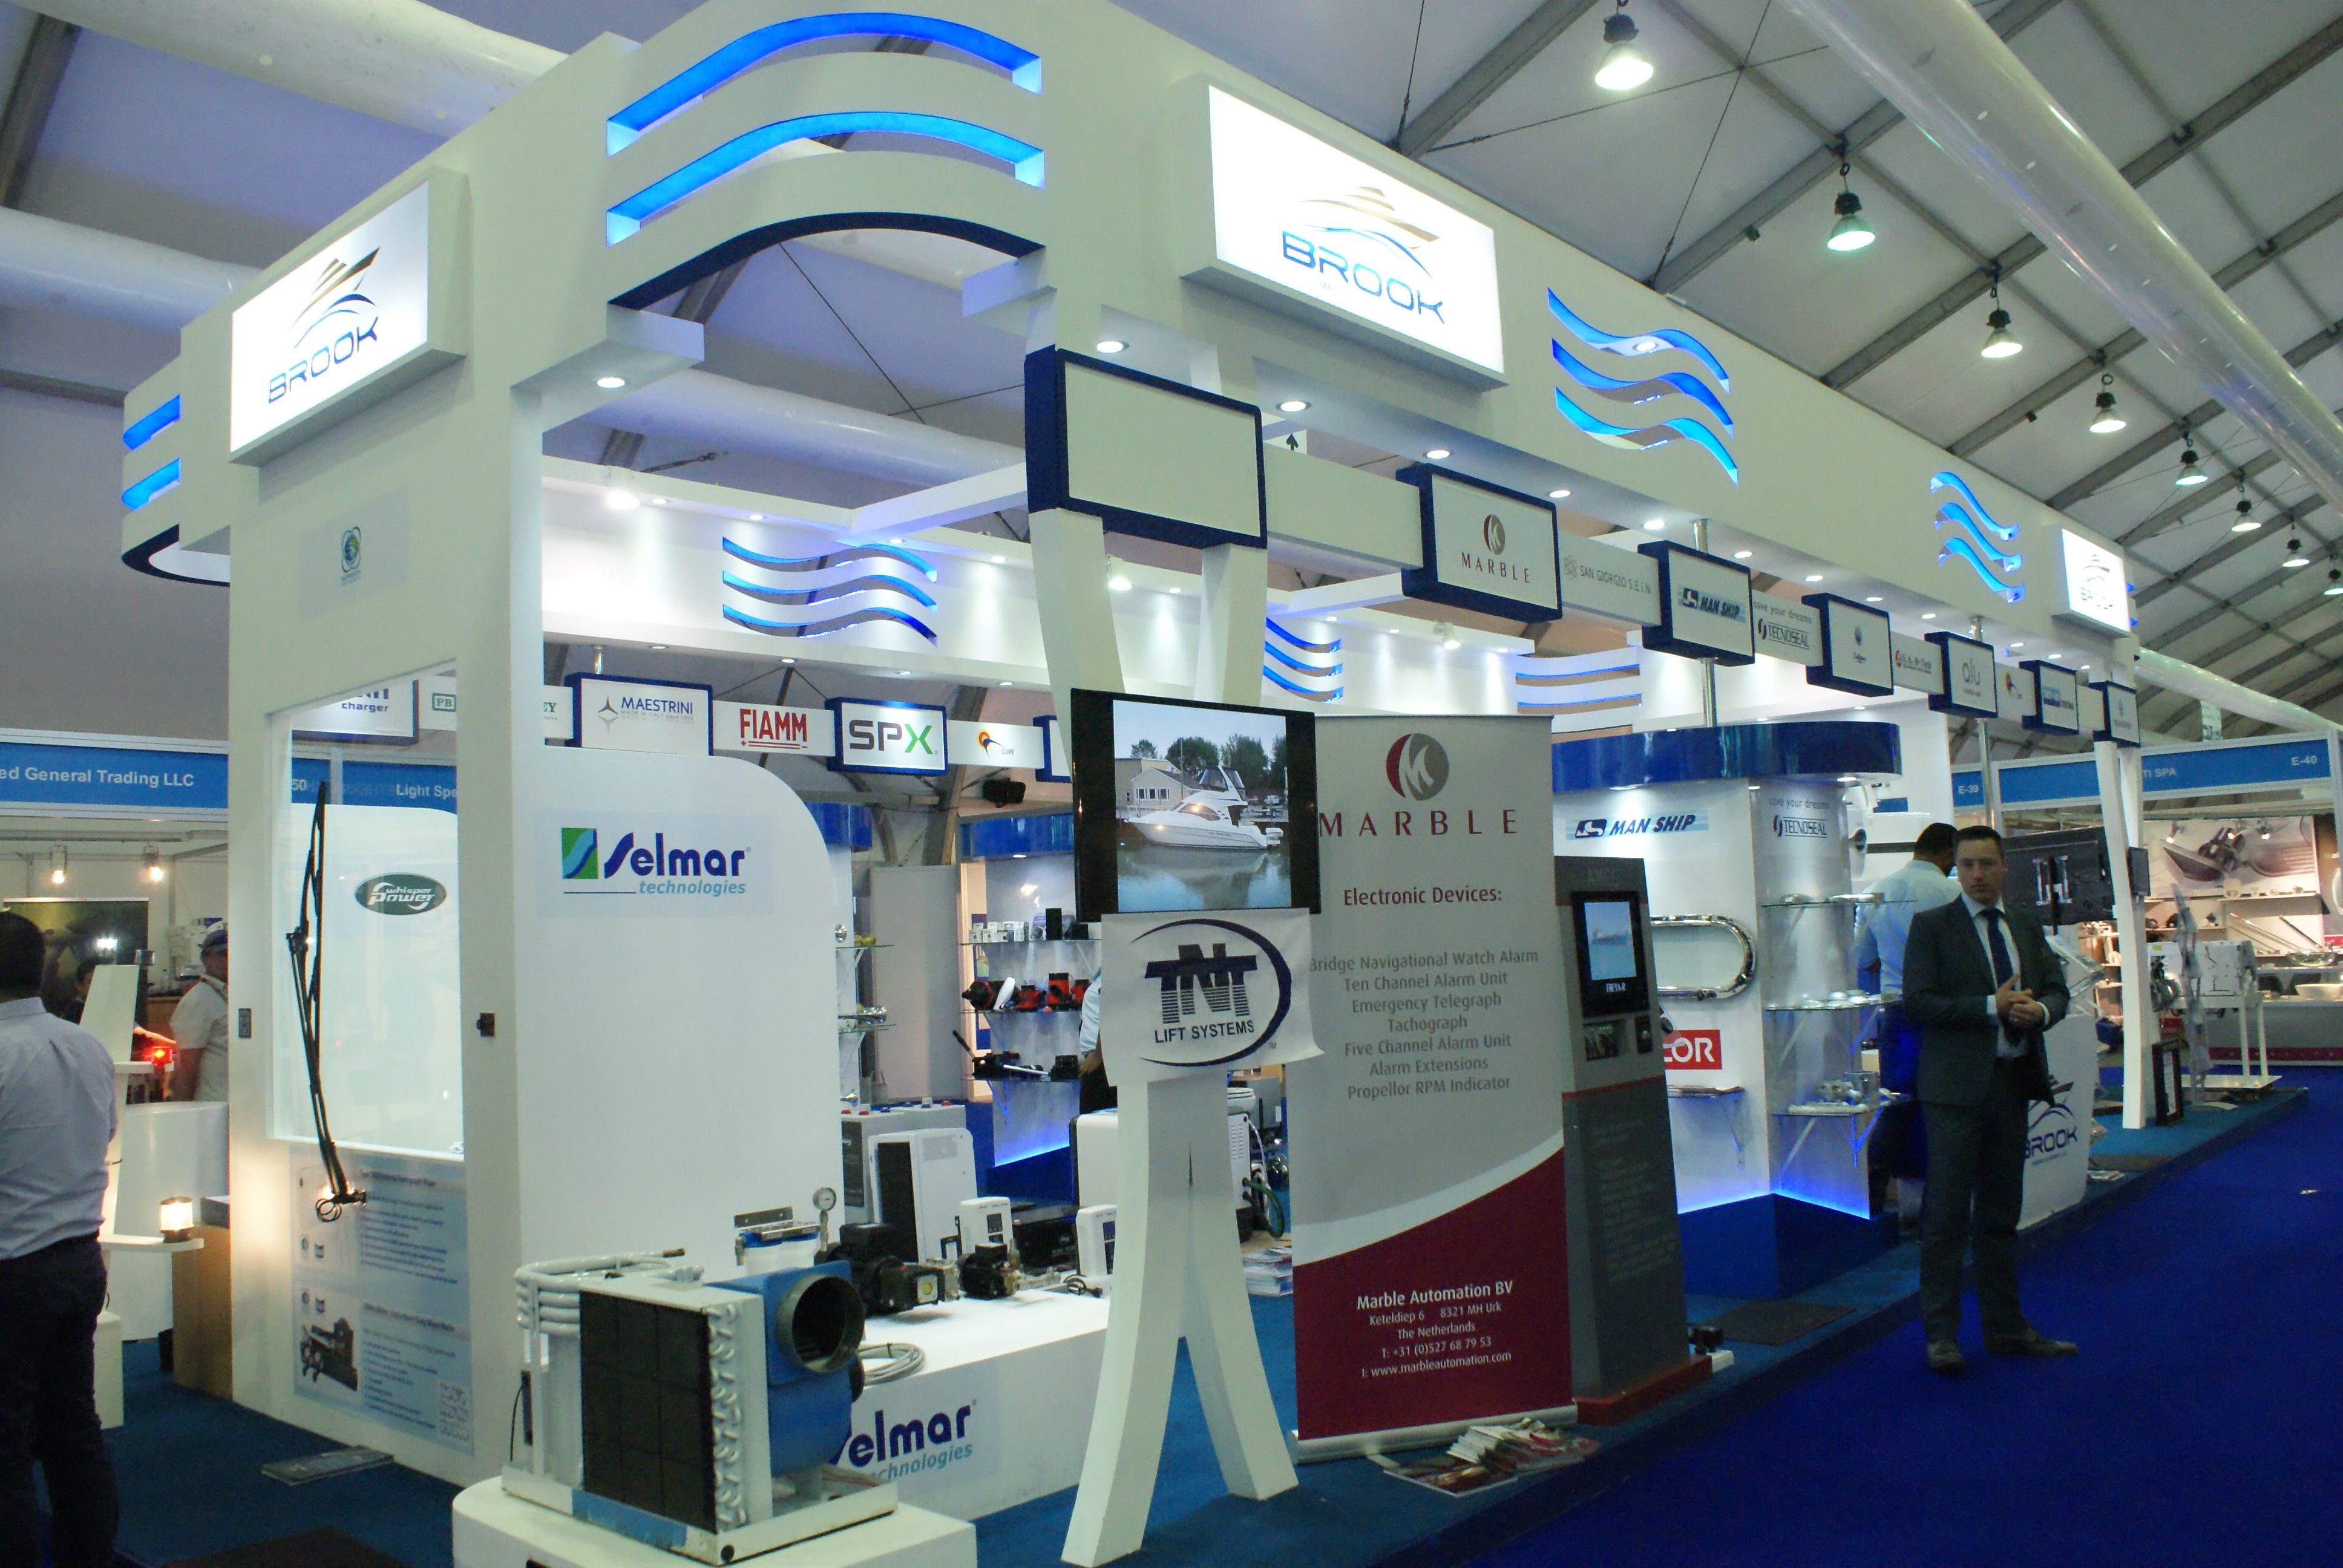 Dreamz Unlimited Llc Exhibition Stand Builders : Framelez events and exhibitions